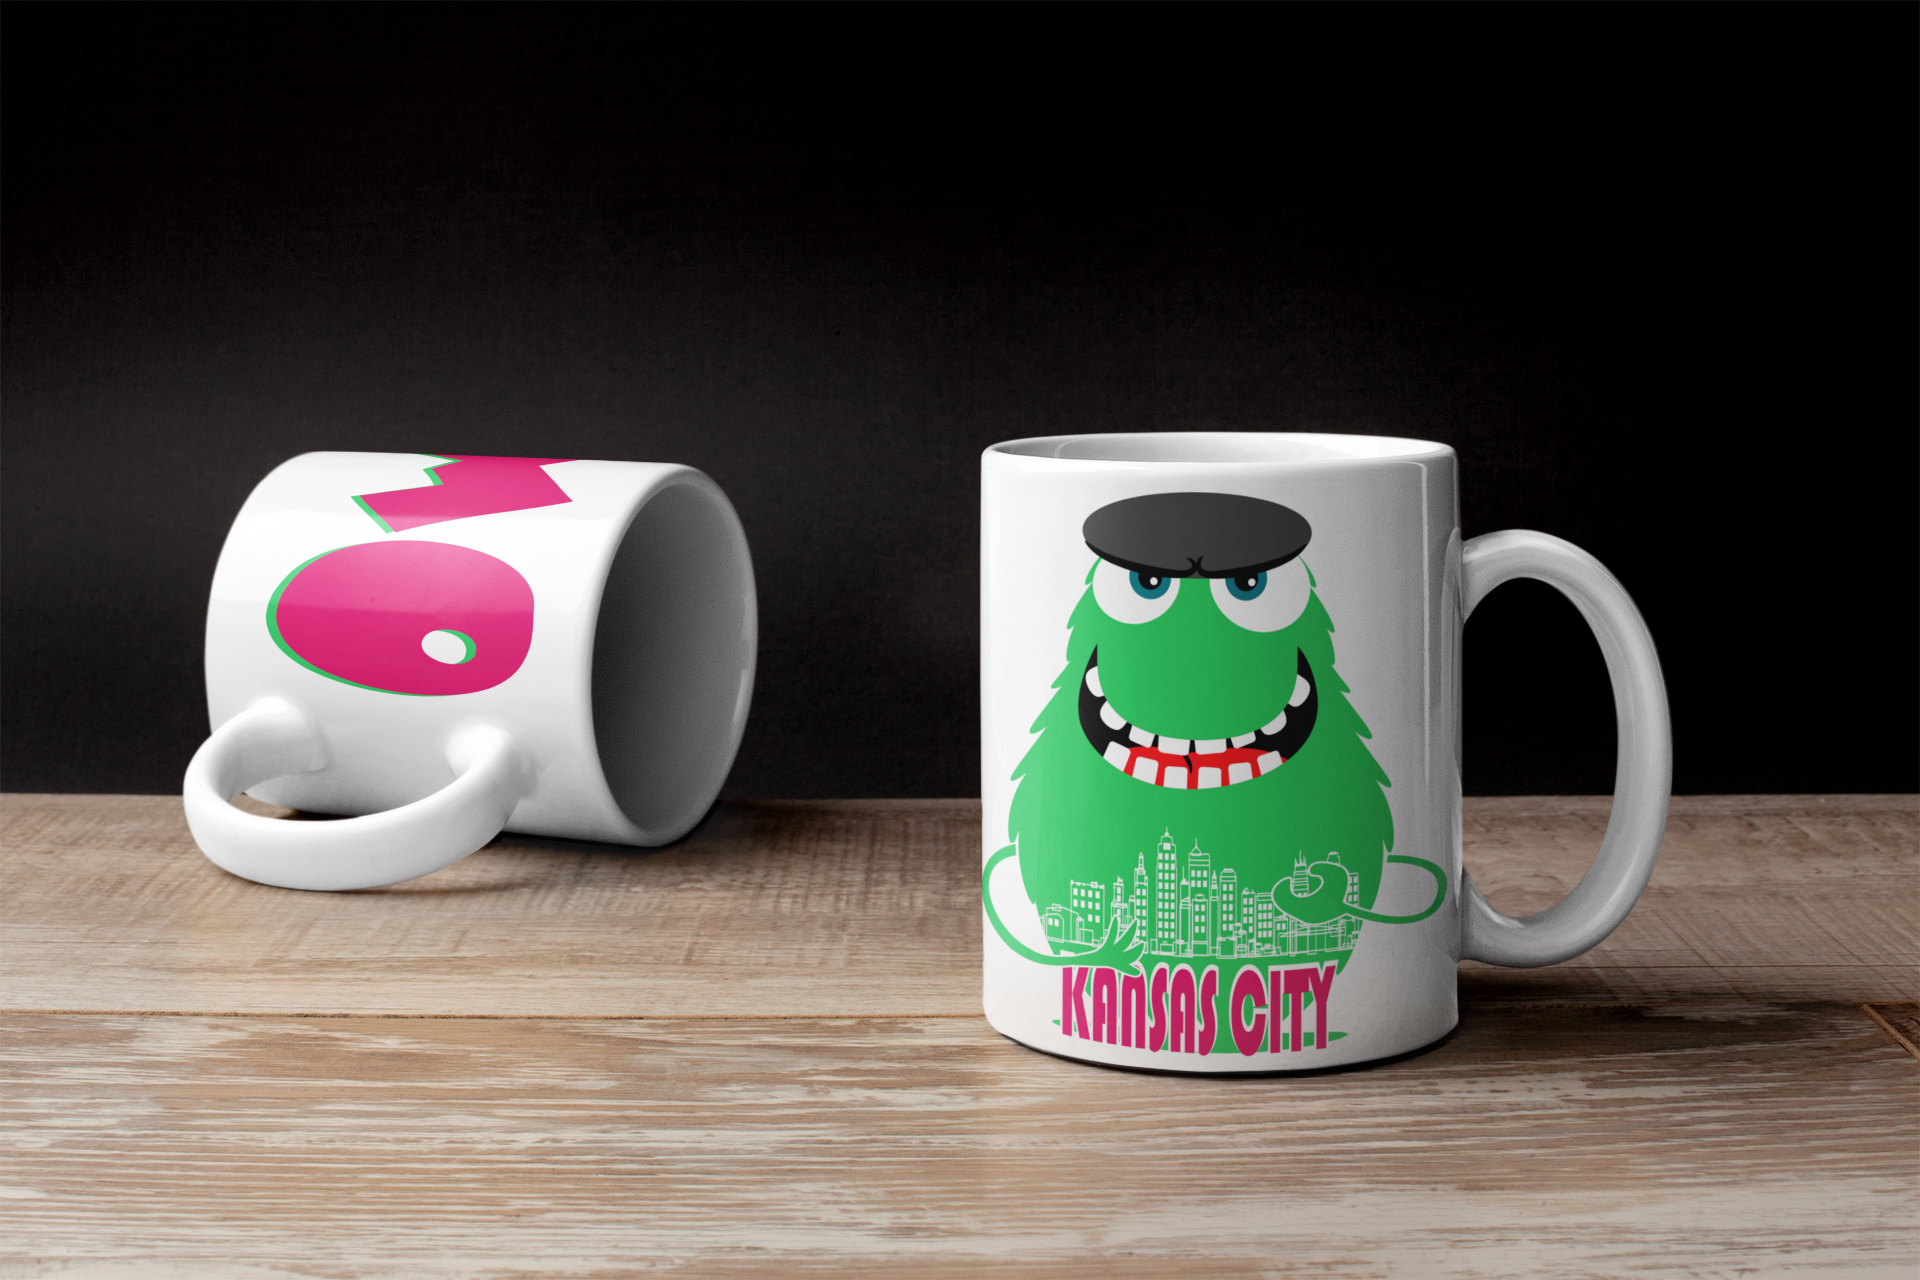 Custom Mug Design For Kansas City Mo Mugs Custom Mugs Mug Designs